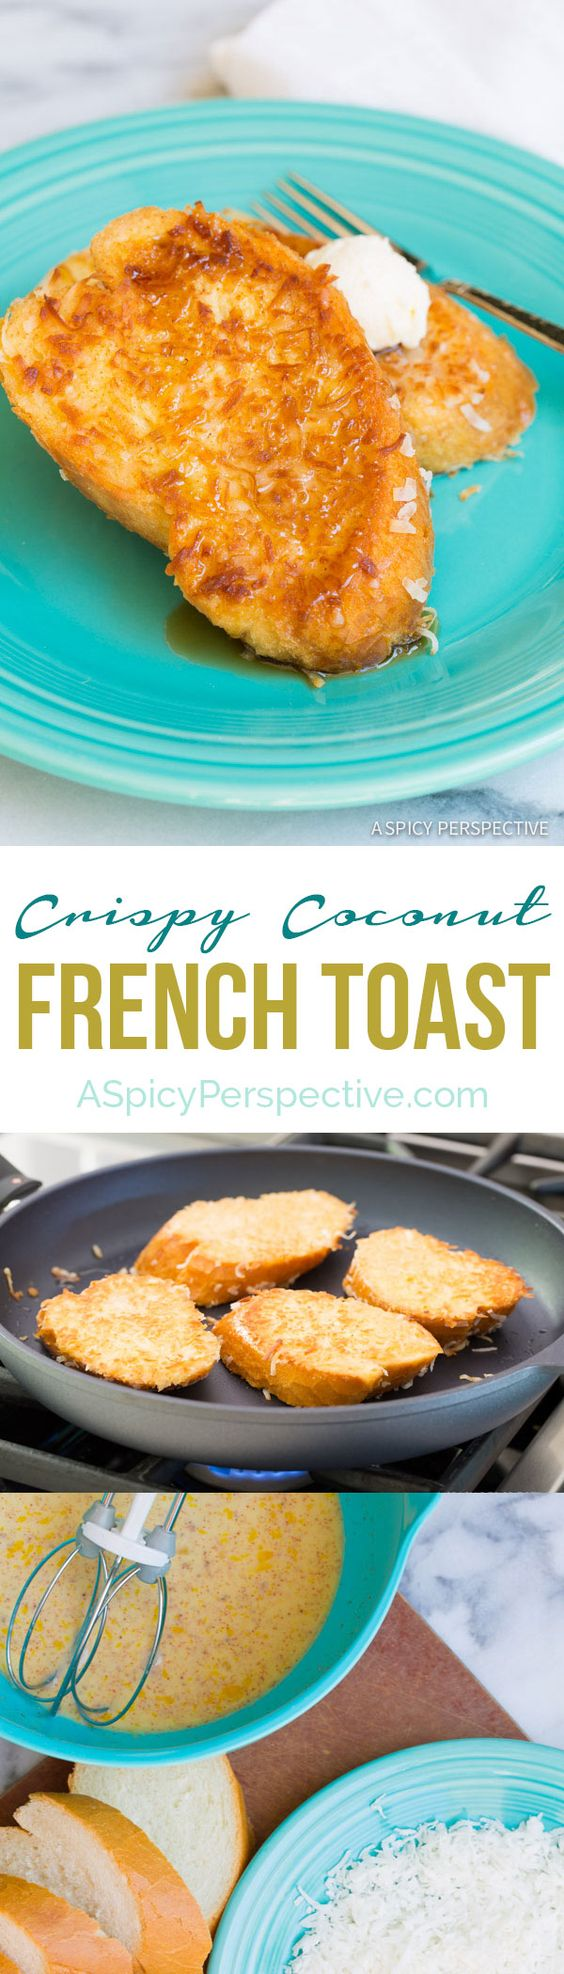 Crispy Decadent Coconut French Toast on ASpicyPerspective.com #coconut